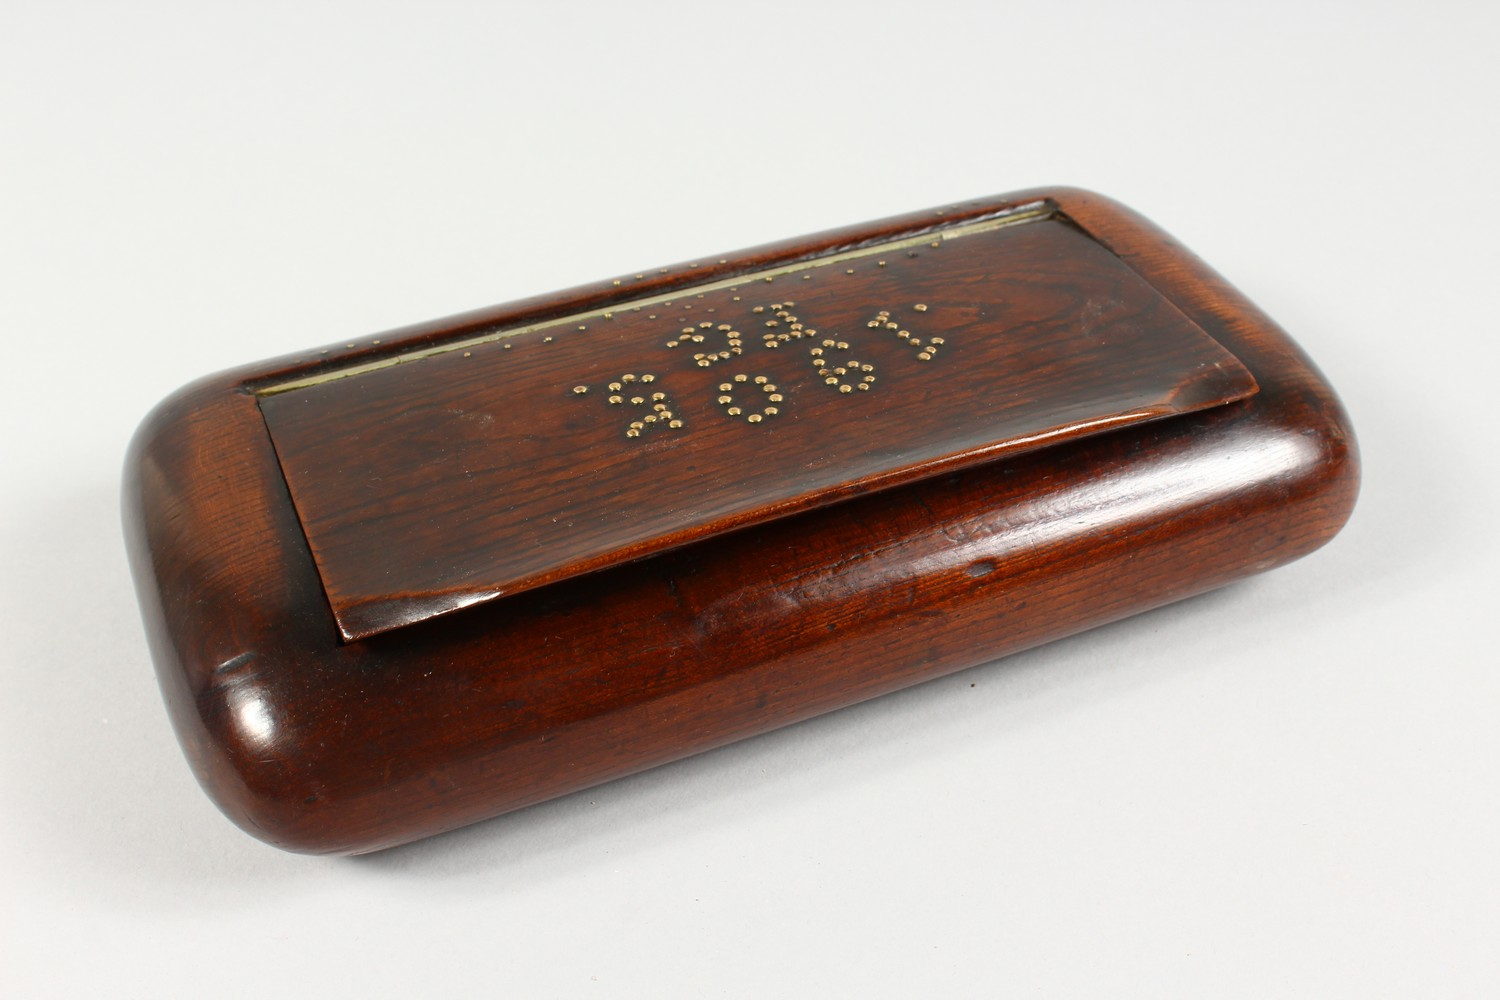 Lot 1421 - A LARGE WOODEN TABLE SNUFF BOX, studded brass inlaid date and initials 1905 FG. 10ins wide.